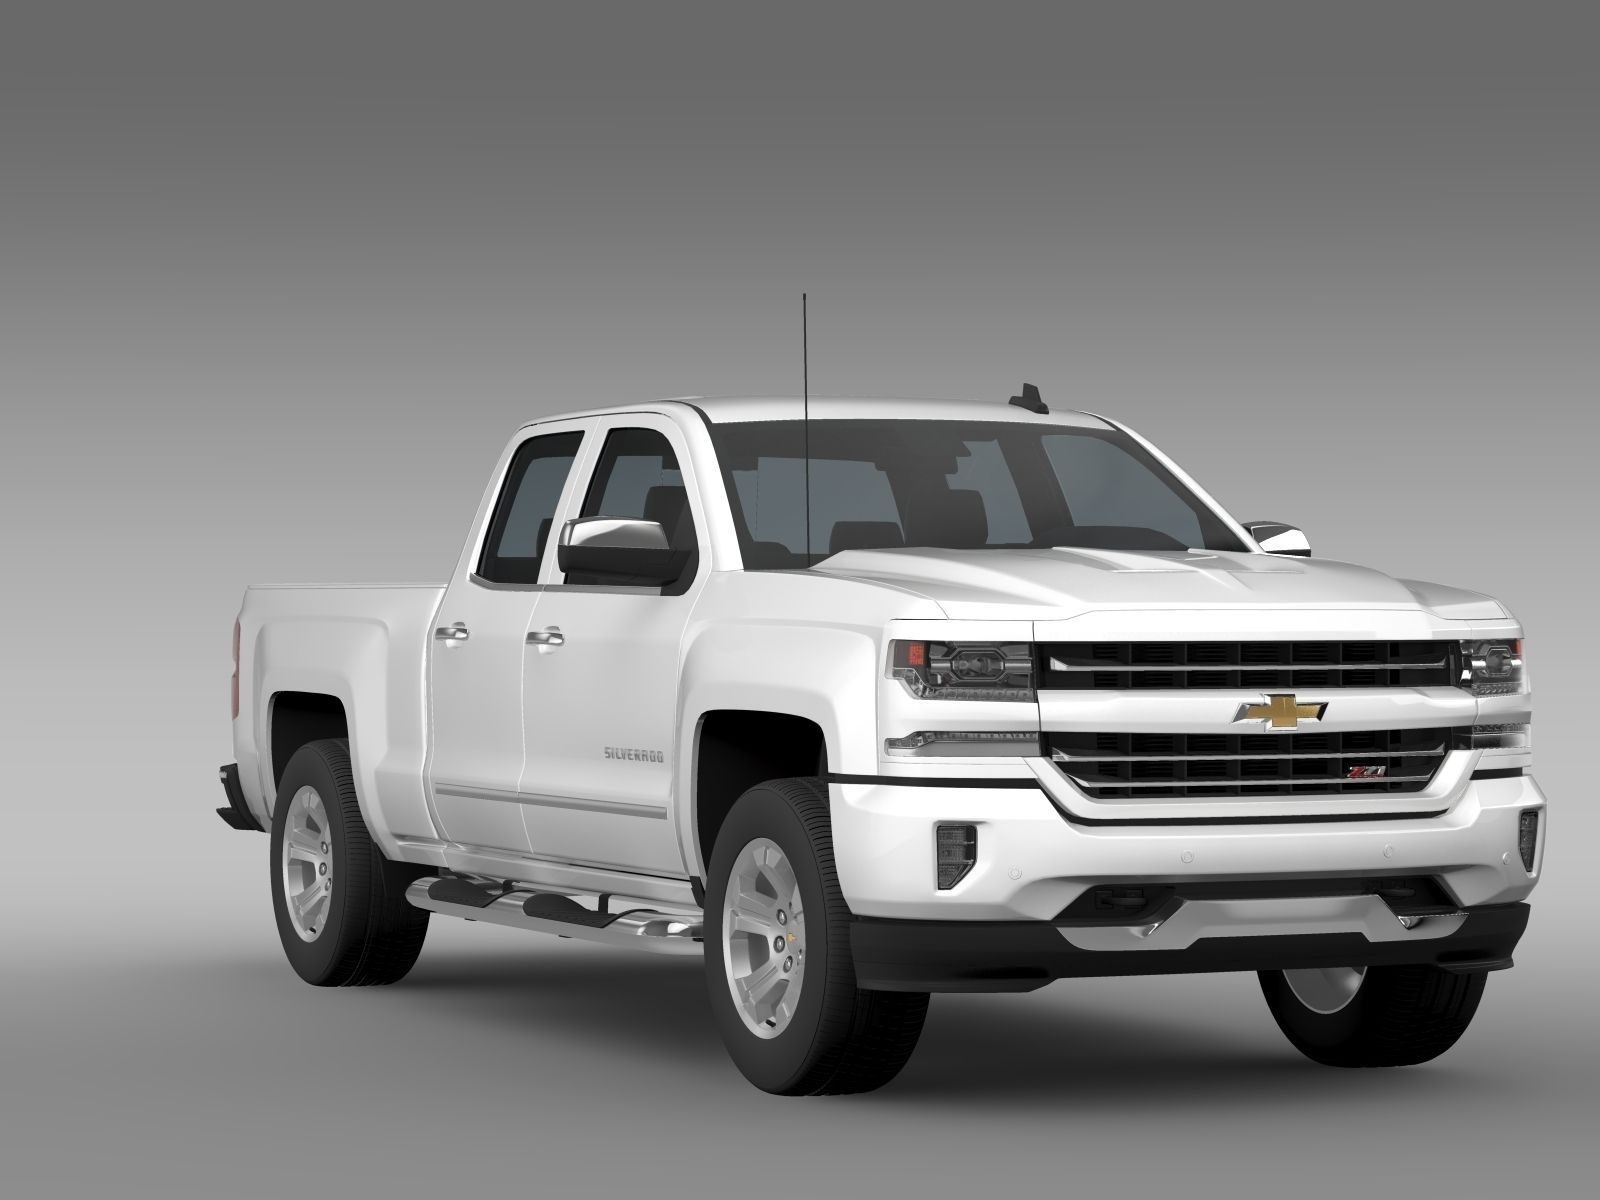 chevrolet silverado ltz z71 double cab gmt 3d model. Black Bedroom Furniture Sets. Home Design Ideas